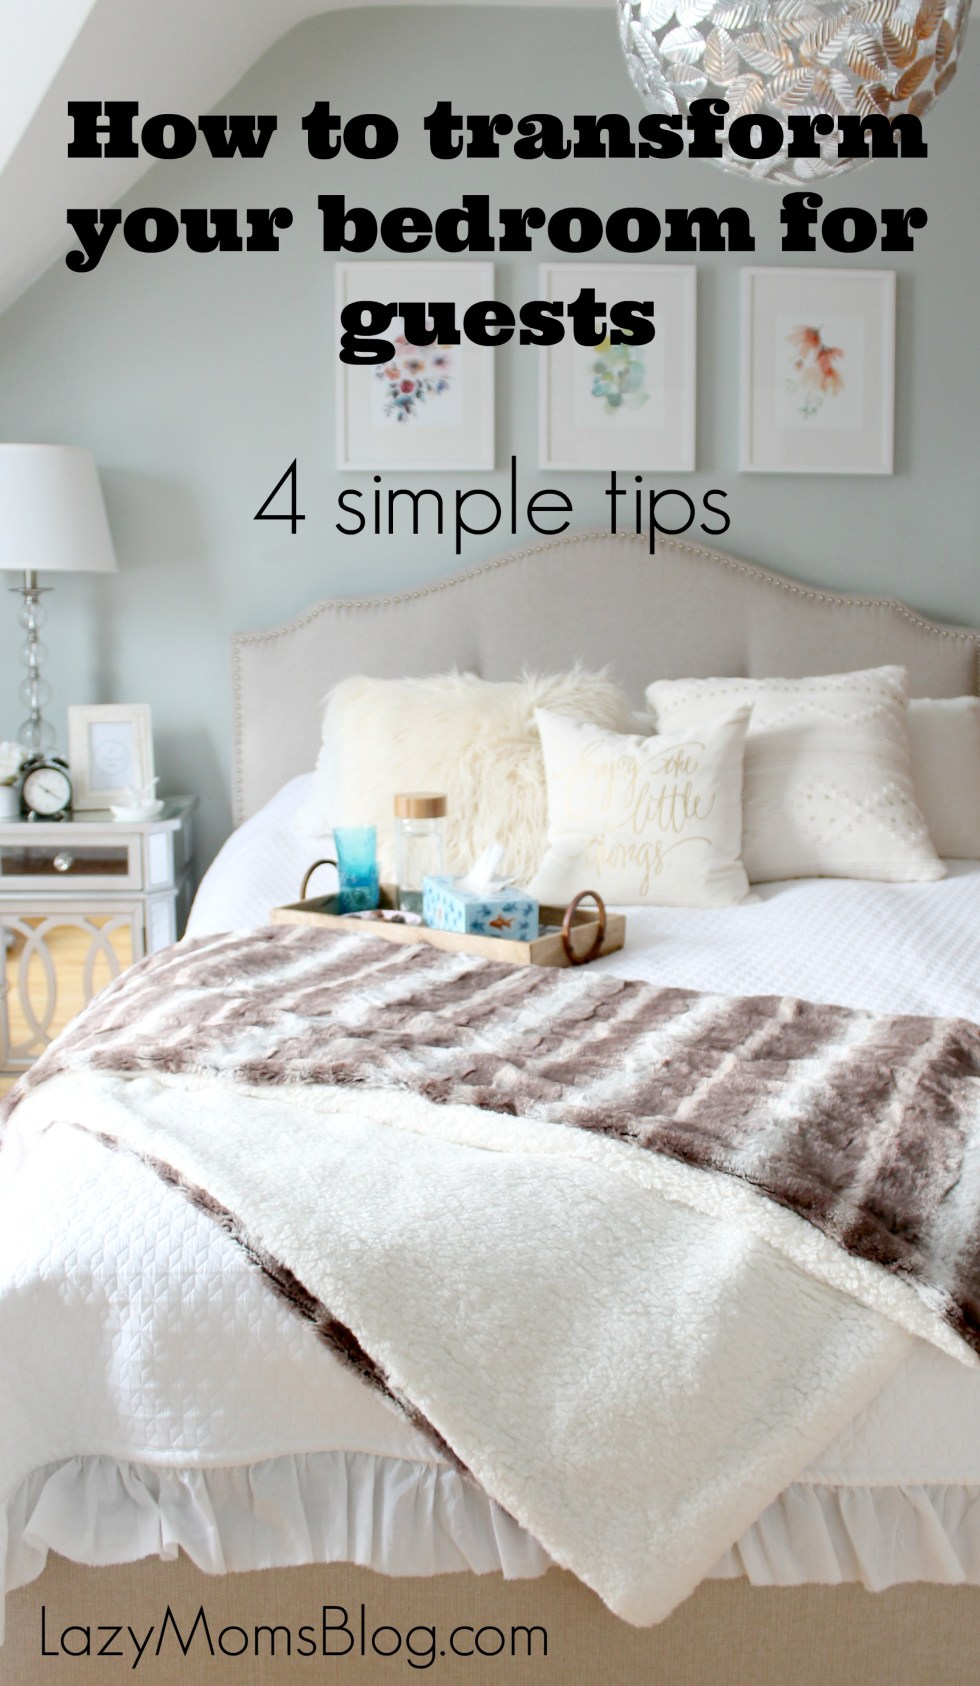 how to transform your bedroom for guests, great simple tips for hosting !